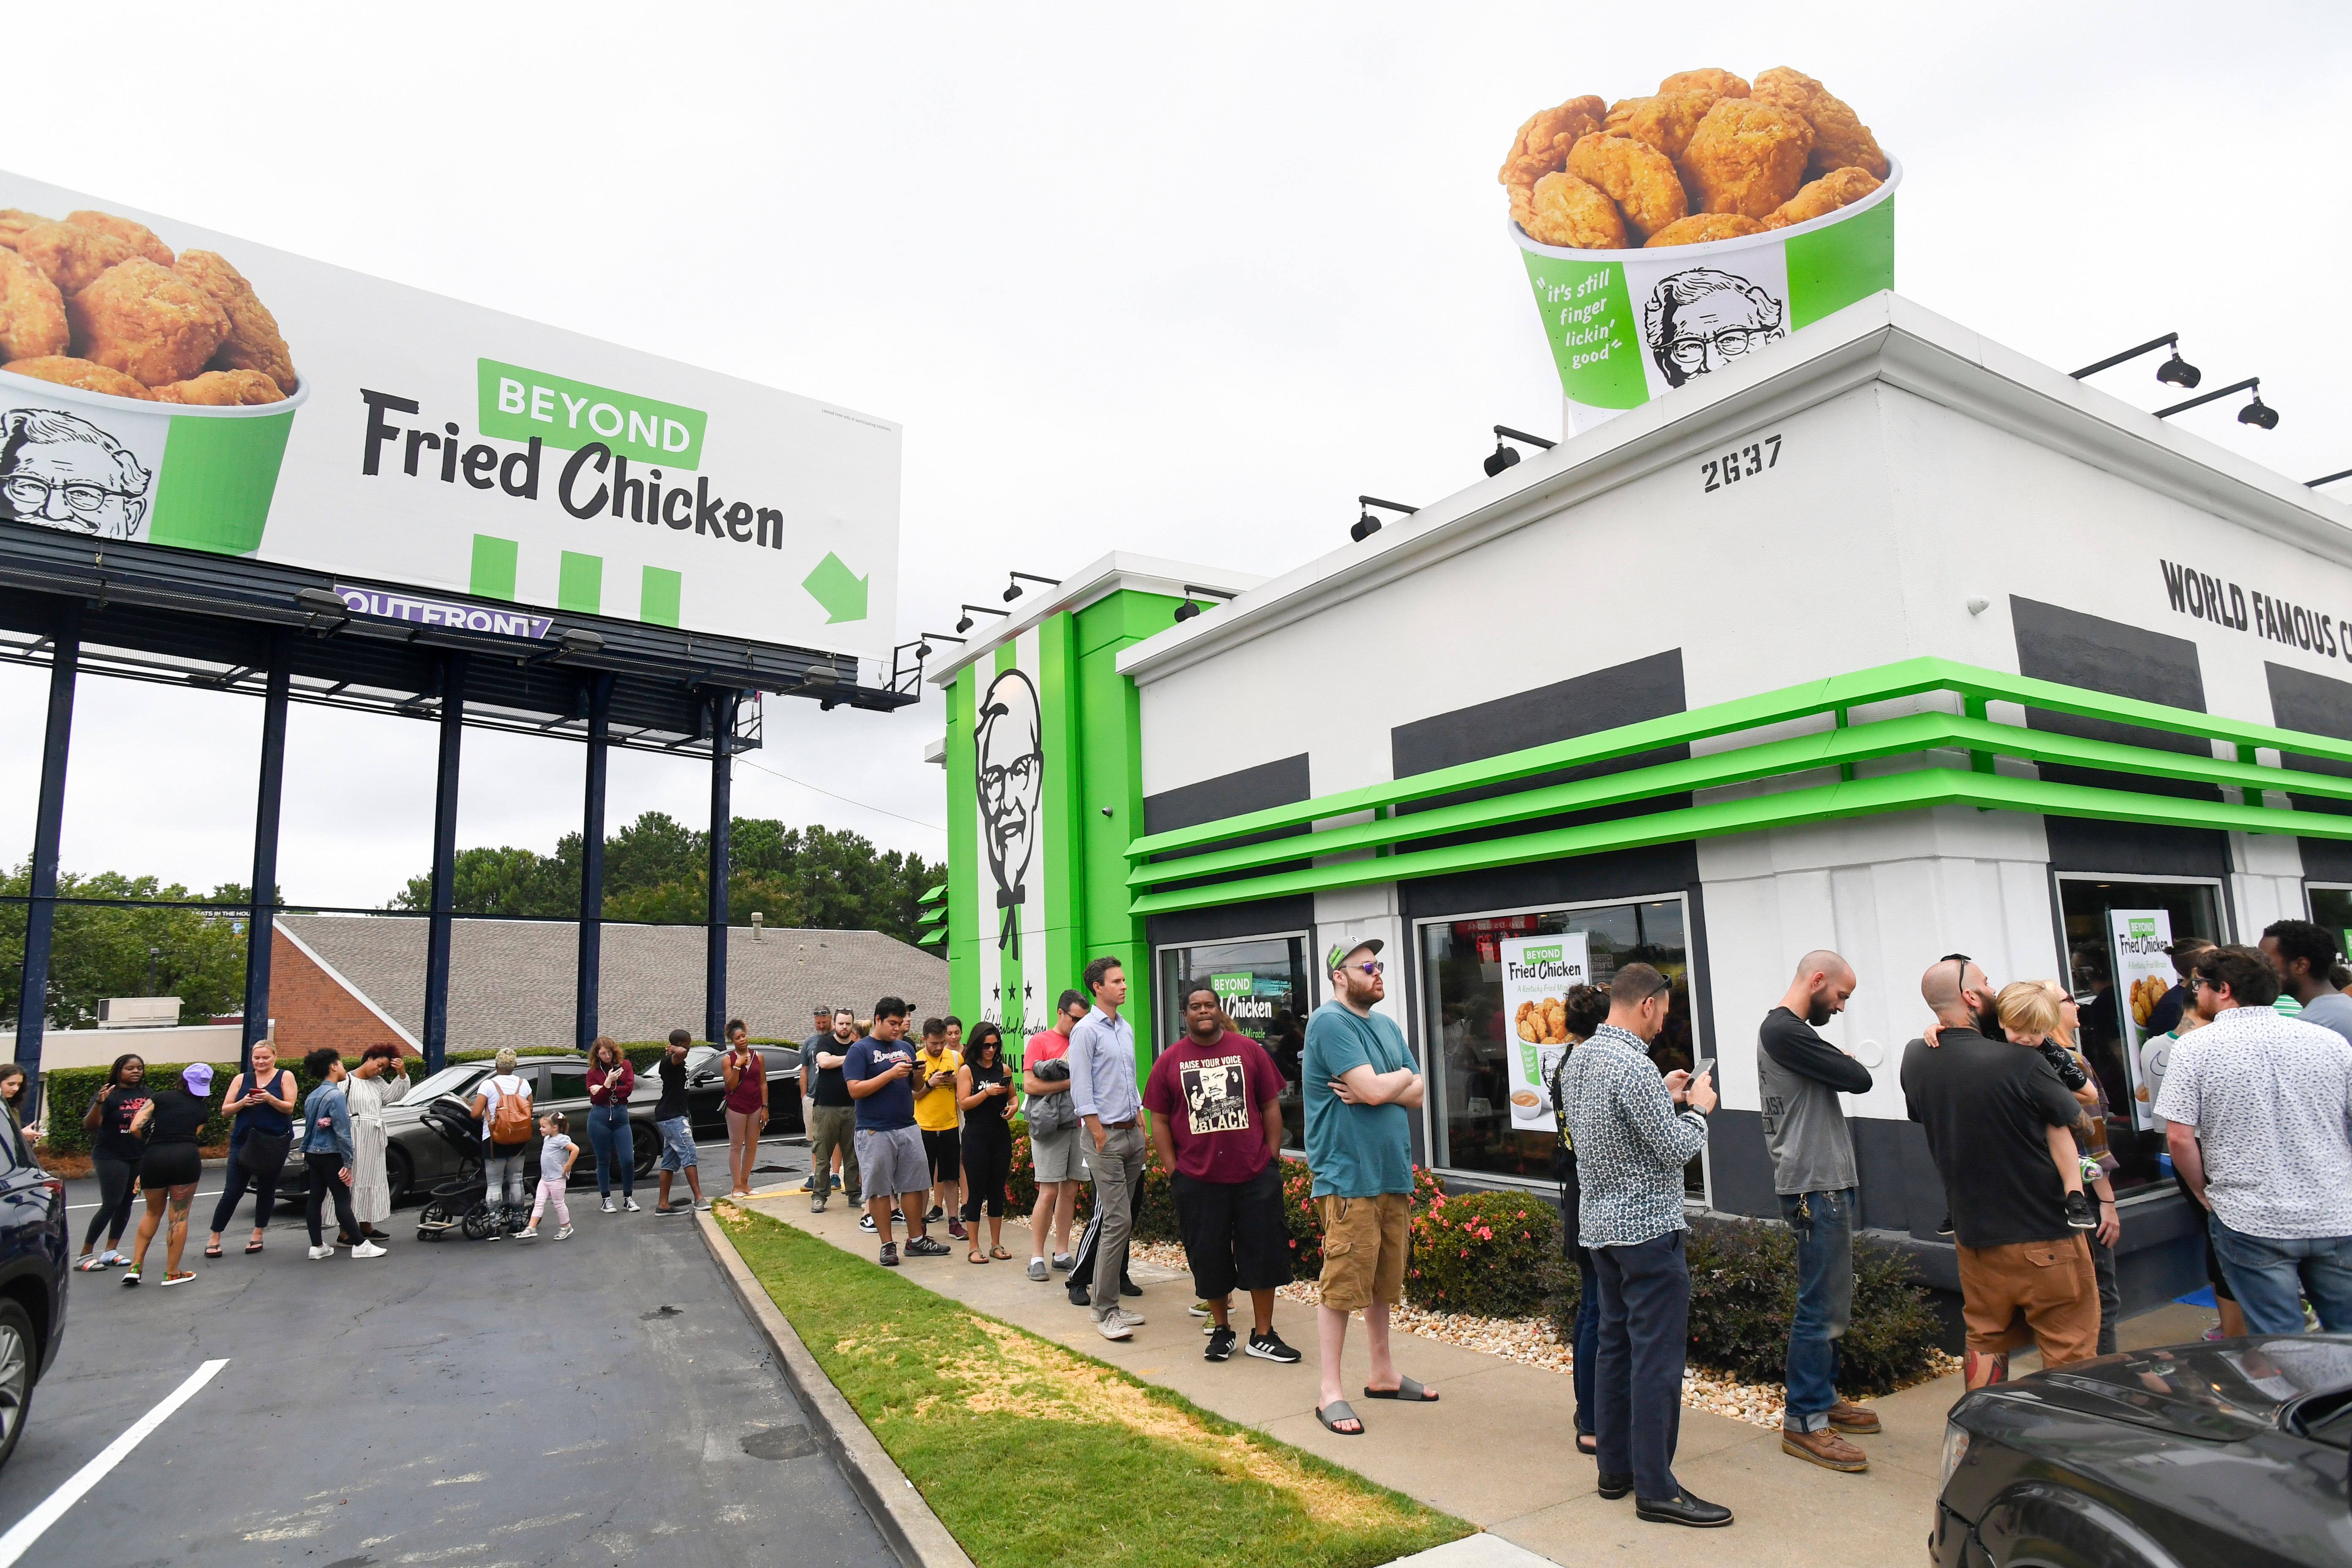 """A KFC store decorated with green coloring and """"Beyond Fried Chicken"""" promotional materials, with a long line of customers waiting outside the store."""